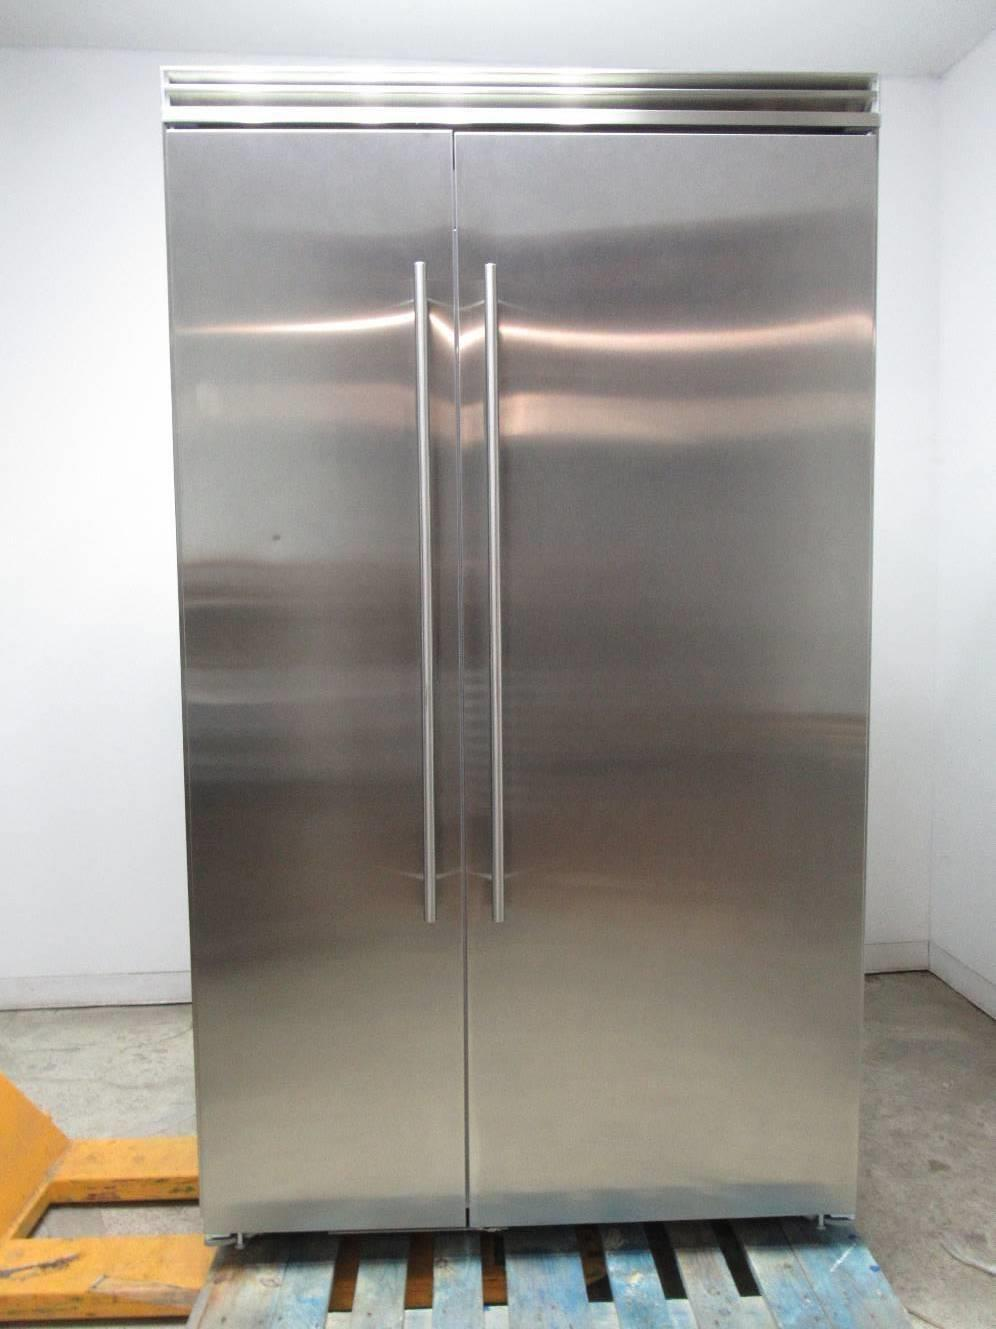 Marvel Professional Series 48 Inch Built-In Side-by-Side Refrigerator MP48SS2NS - ALSurplus AL